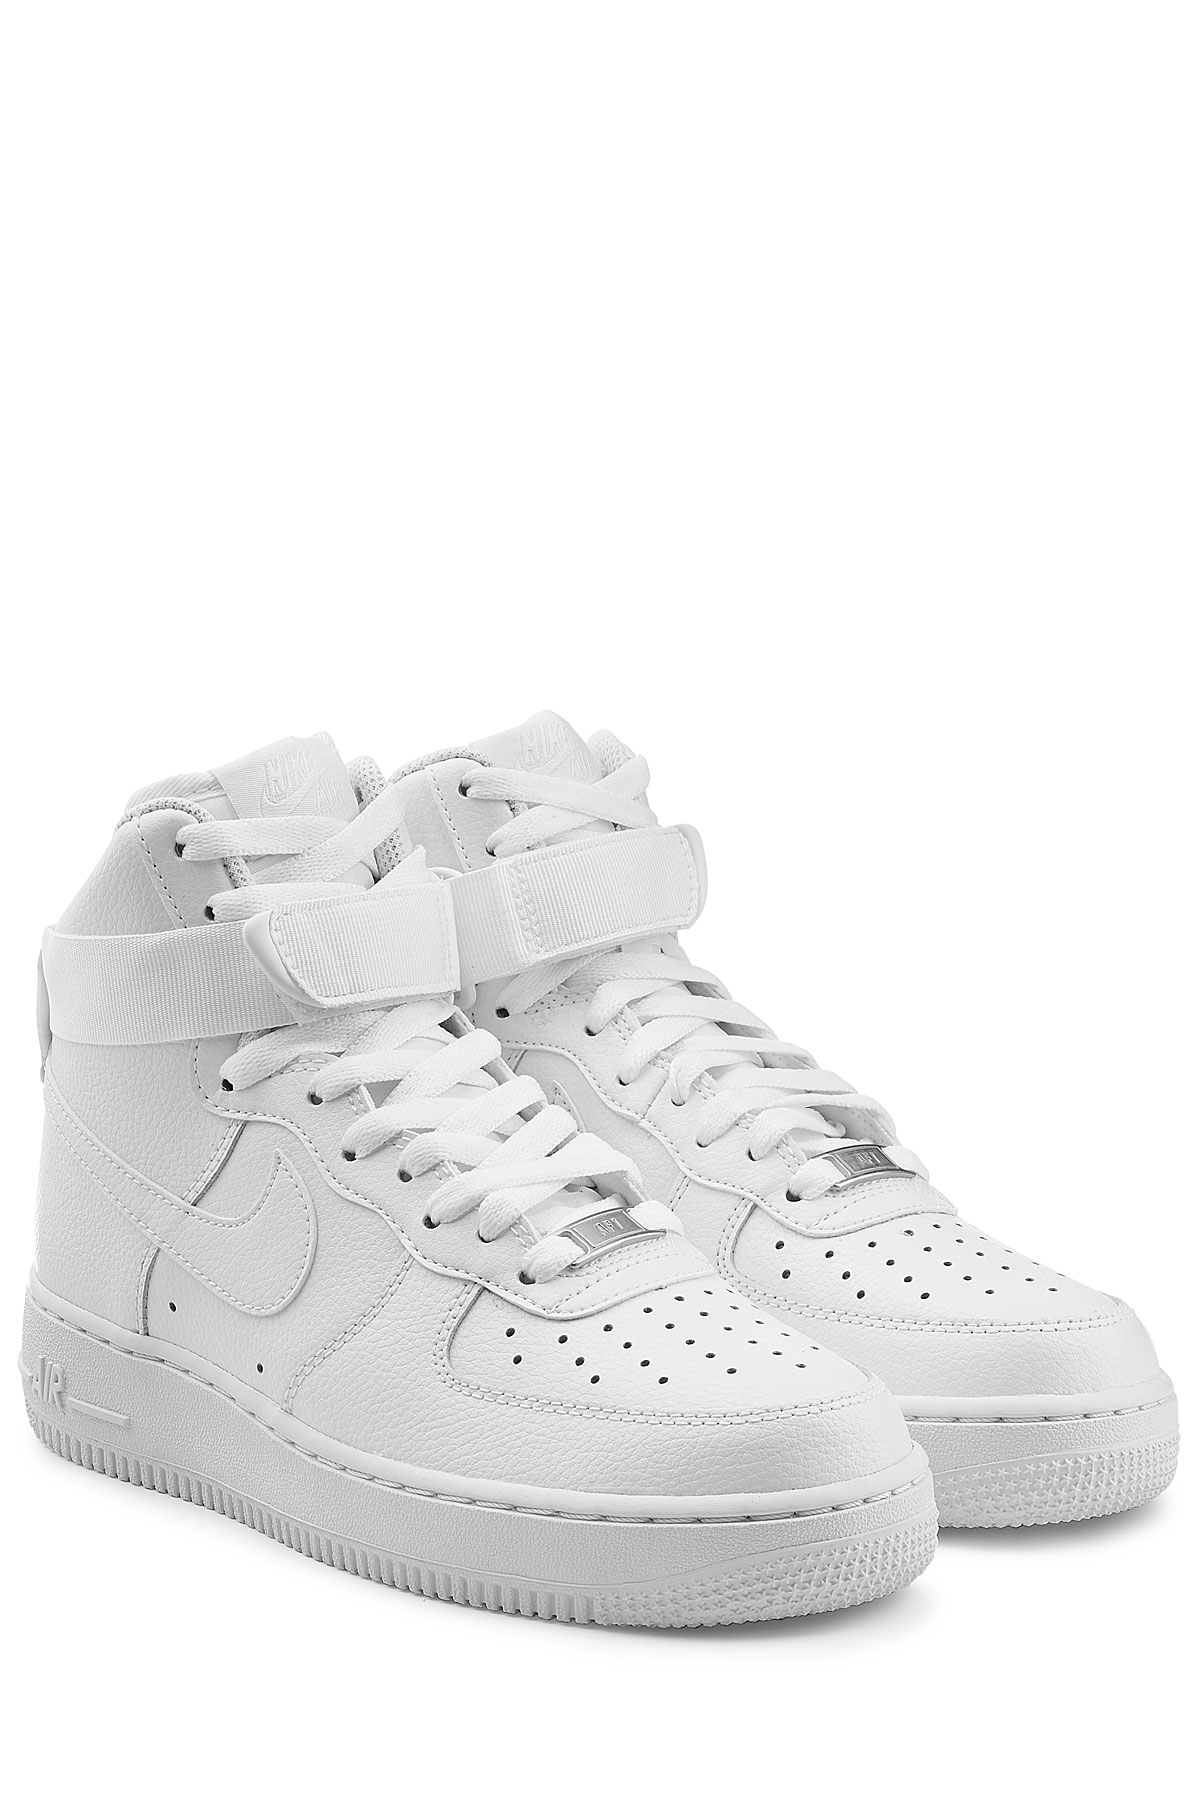 nike air force 1 360 view nike air force 1 bianco alto. Black Bedroom Furniture Sets. Home Design Ideas